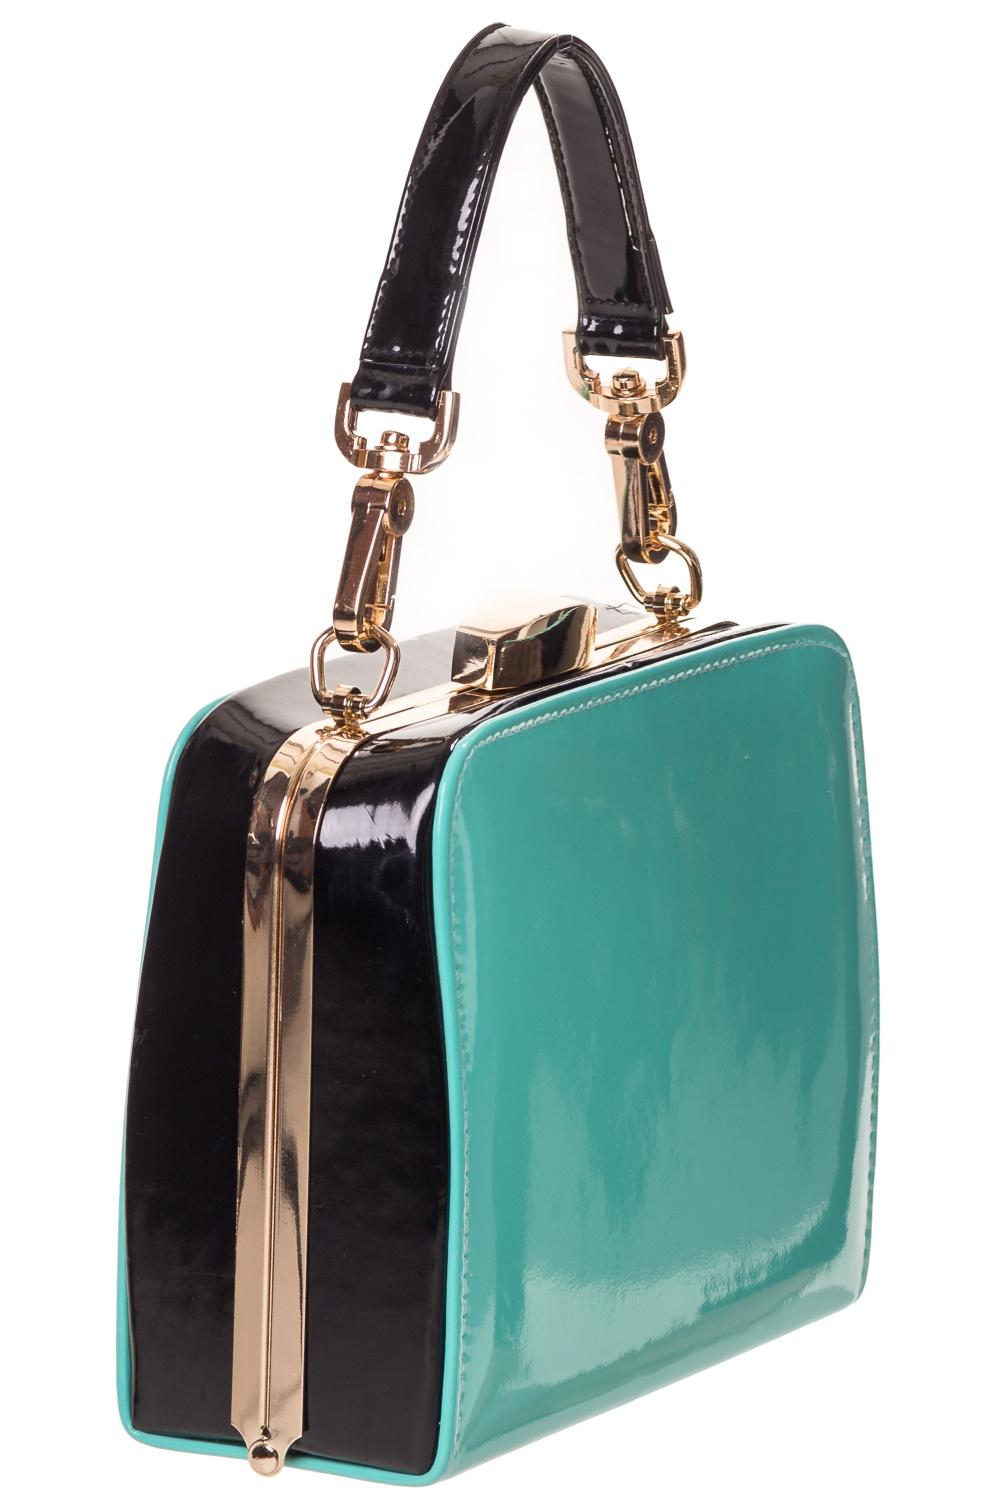 Banned Apparel - No Mercy 1950's Style Carry Shoulder Bag in Turquoise & Wh